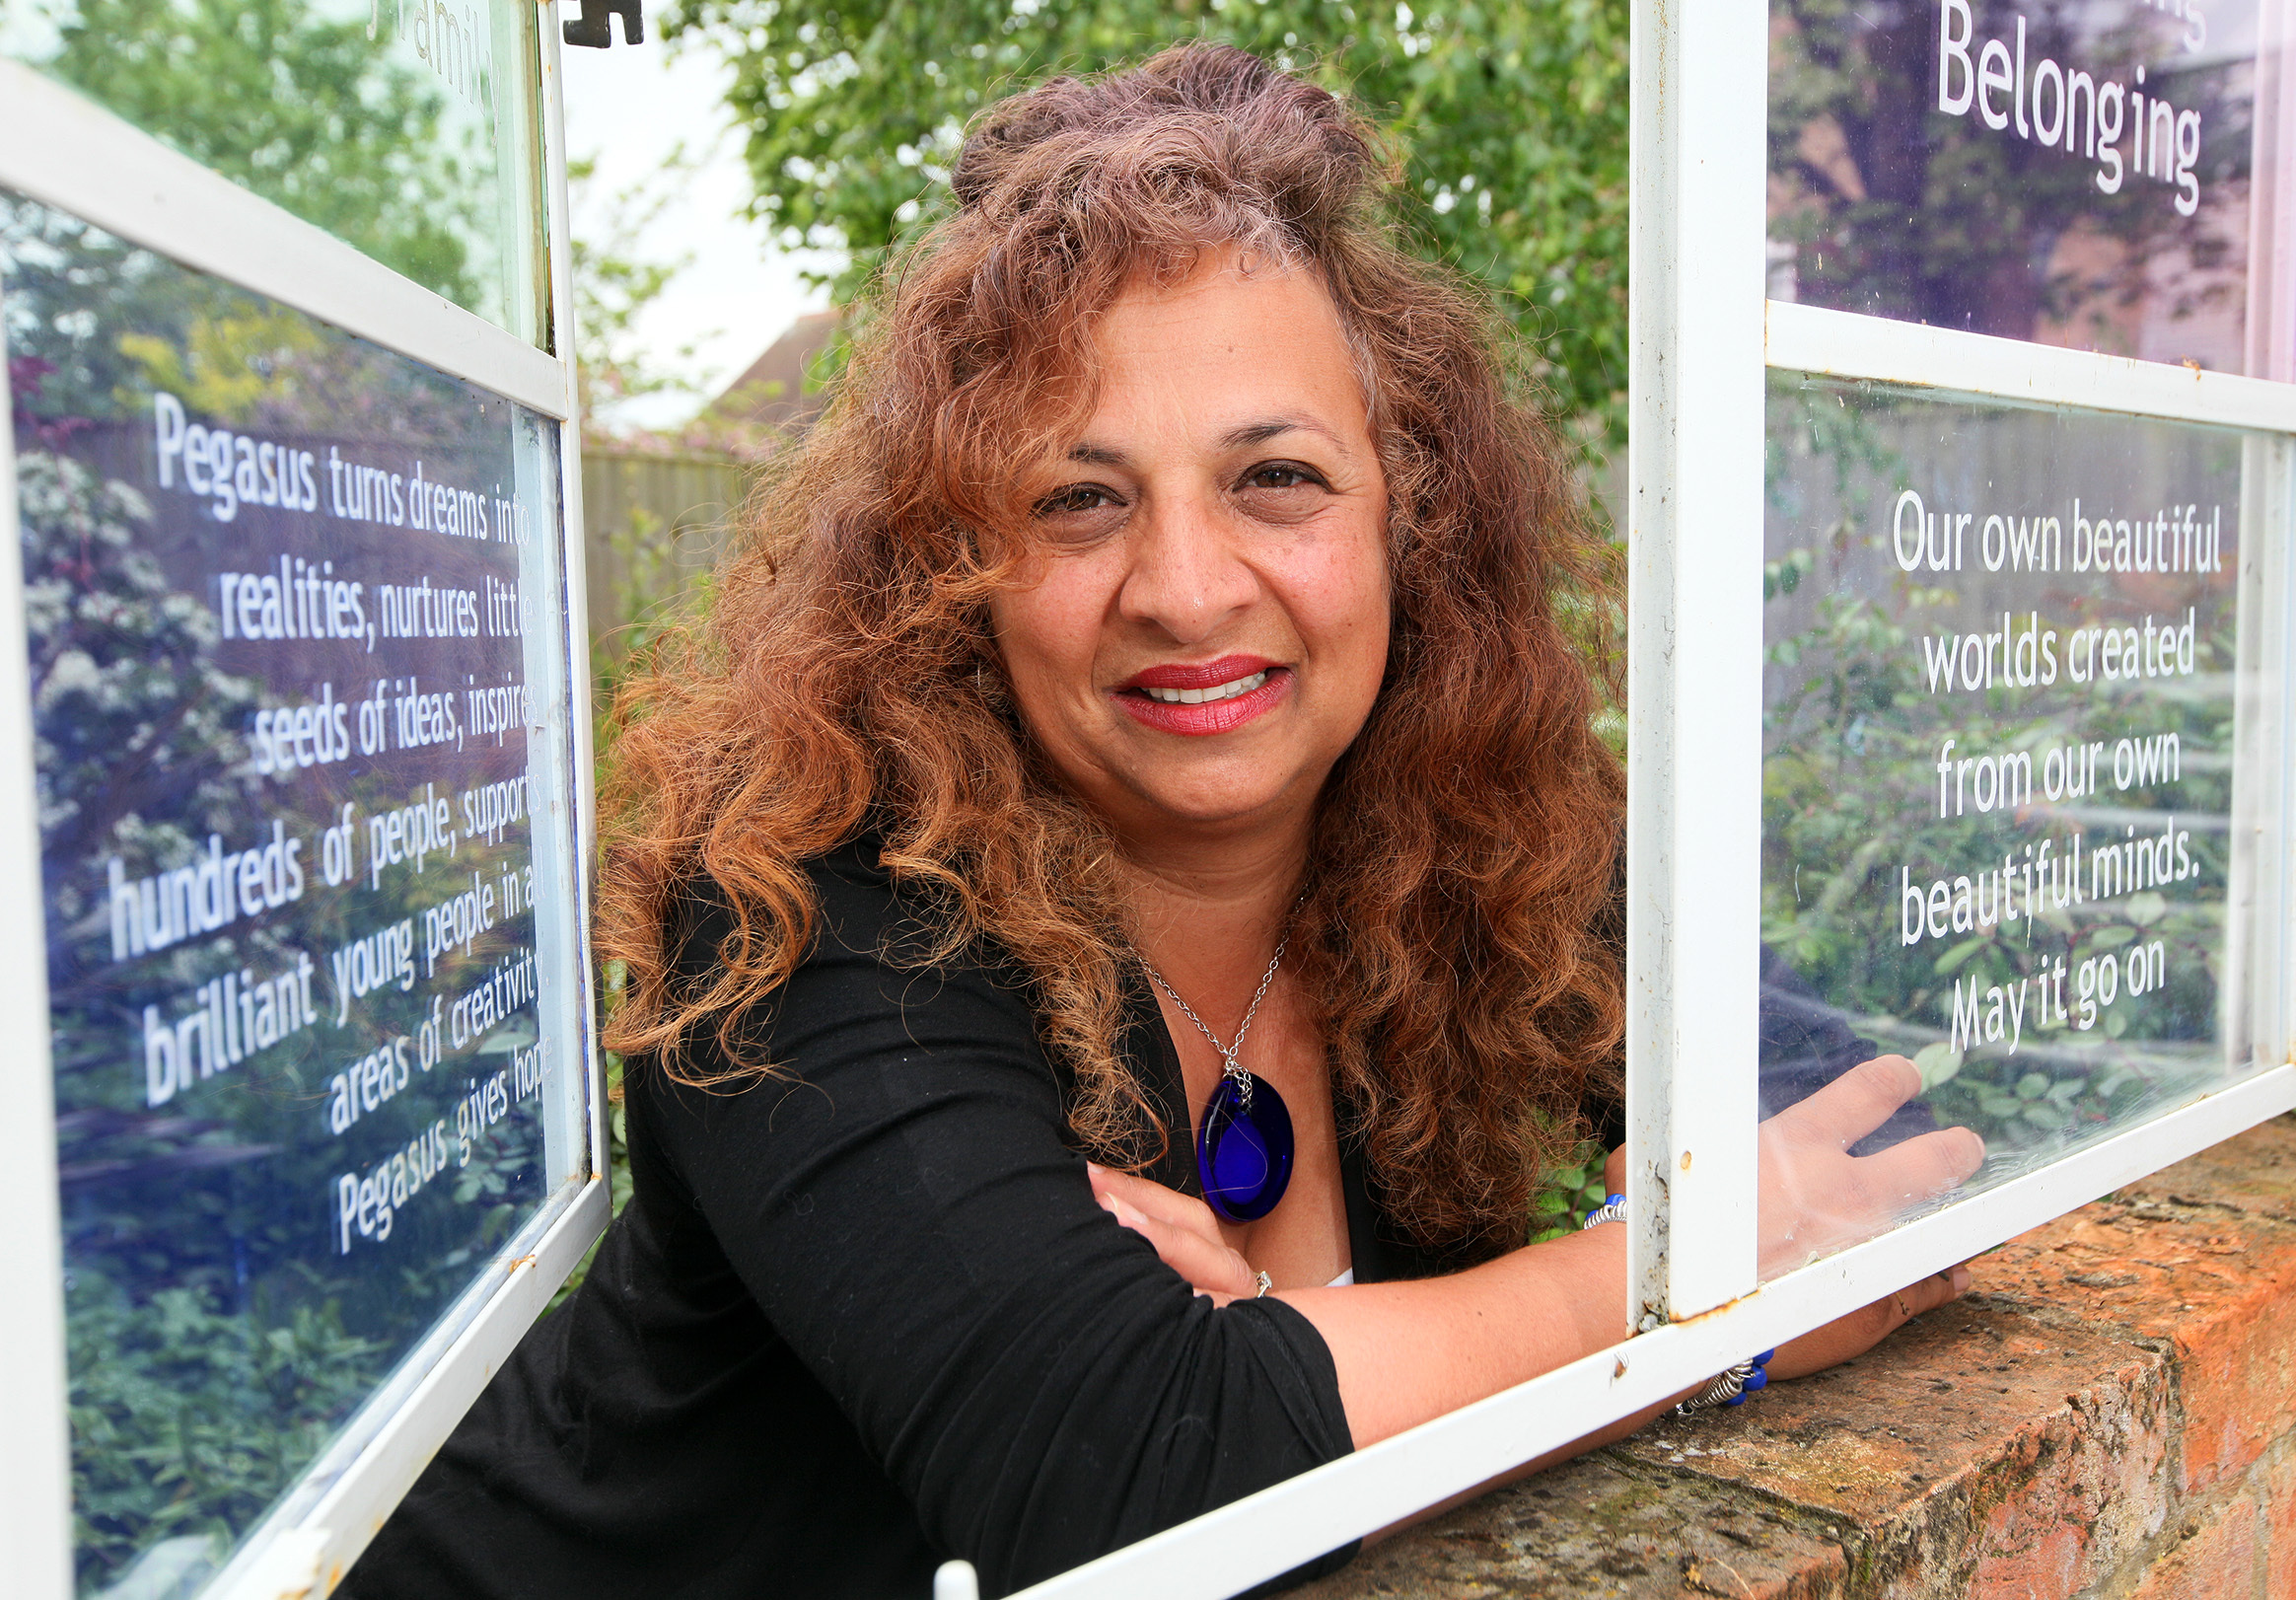 FILENAME: PEGASUS_DIRECTOR.BOOKED BY:  ANNABAL BAGDI.PICTURE BY: LUCY FORD.LENGTH: LEAD.LOCATION: PEGASUS THEATRE, MAGDALEN ROAD, OXFORD, OX4 1RE.DATE: 15TH MAY 2015..Yasmin Sidhwa is stepping down as director of the Pegasus Theatre after 17 years..Pictur